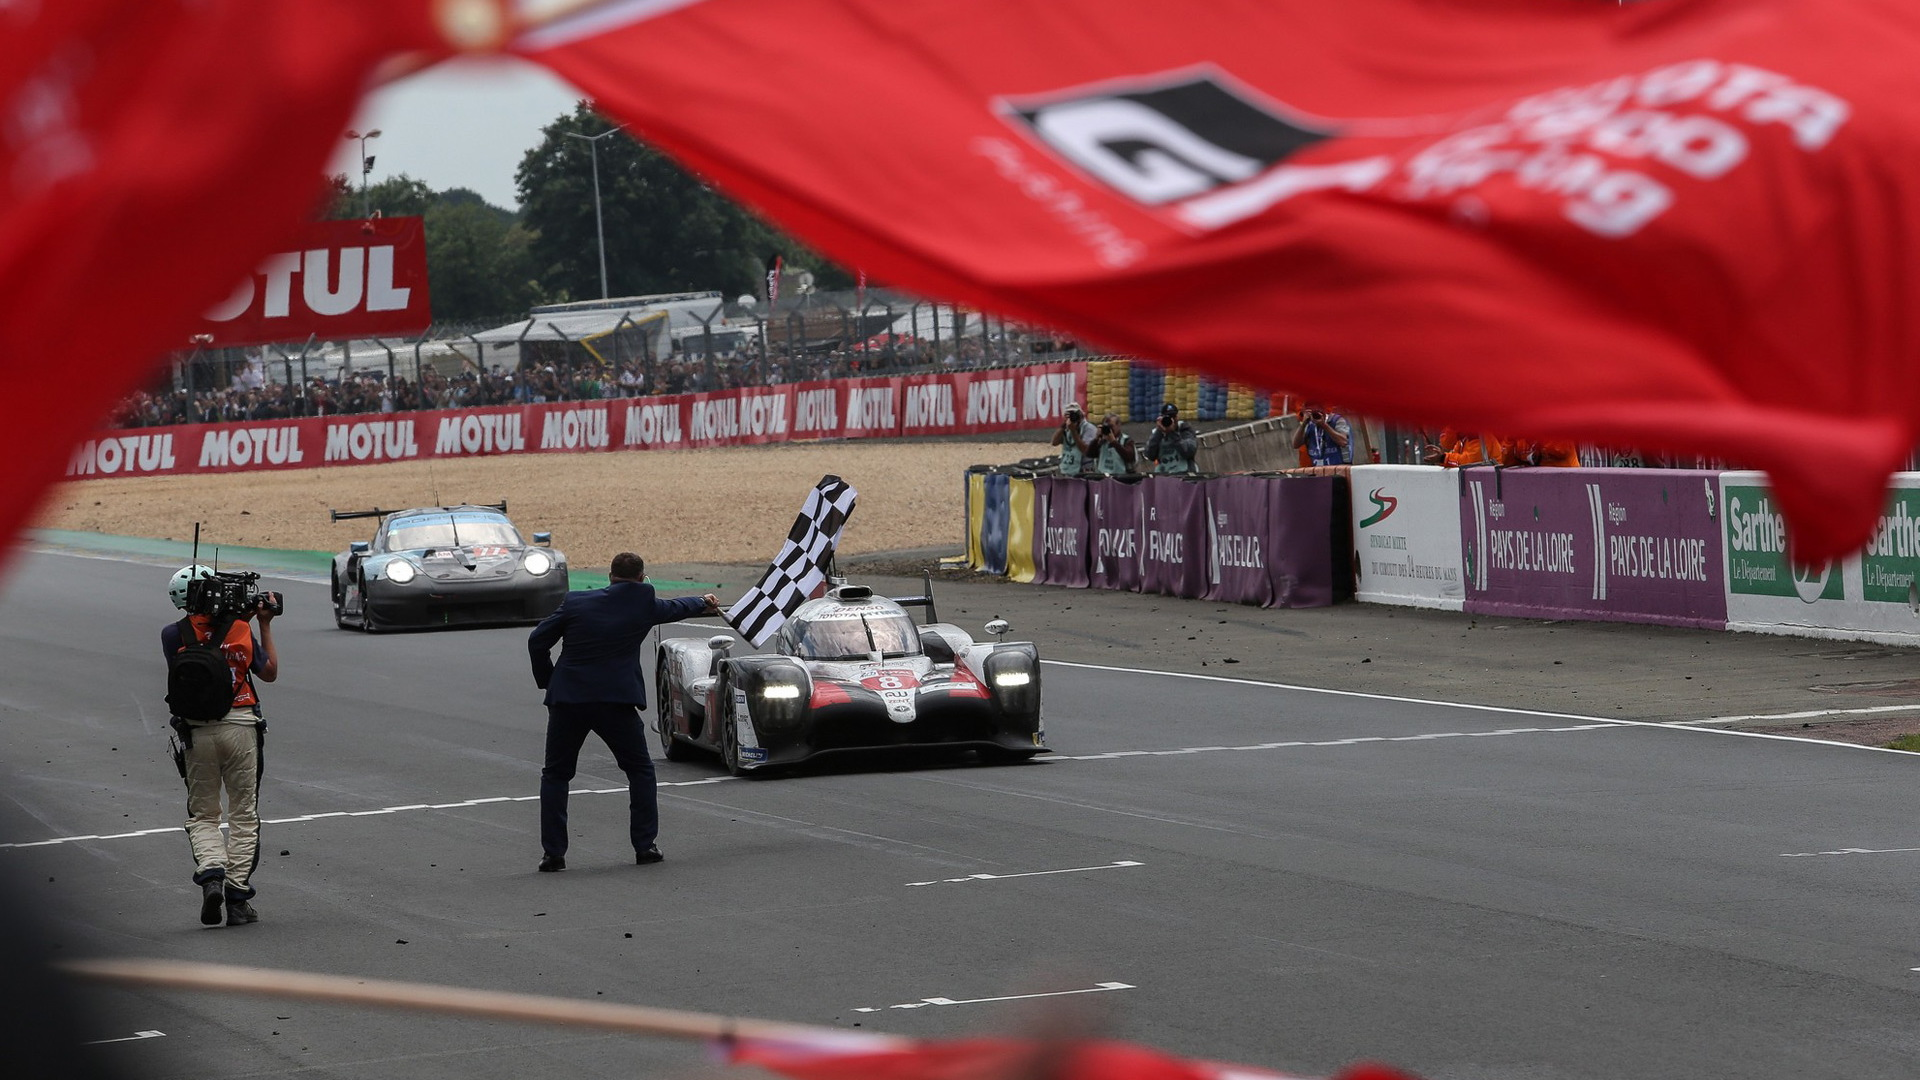 Toyota at the 2019 24 Hours of Le Mans